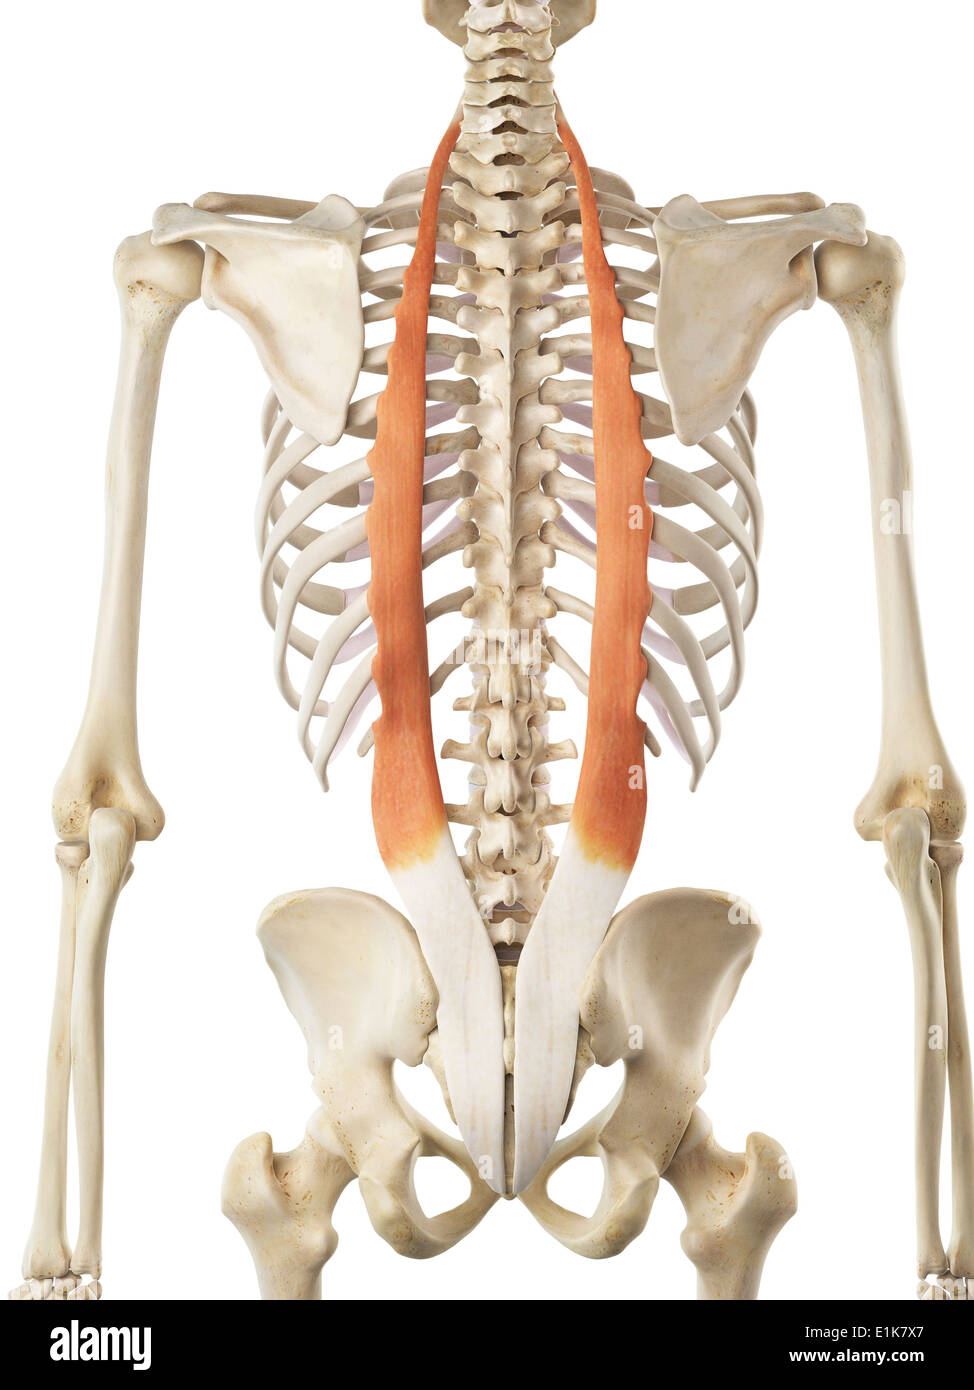 diagram of rib cage and muscles lung sounds muscle ribs ribcage stock photos images human iliocostalis computer artwork image